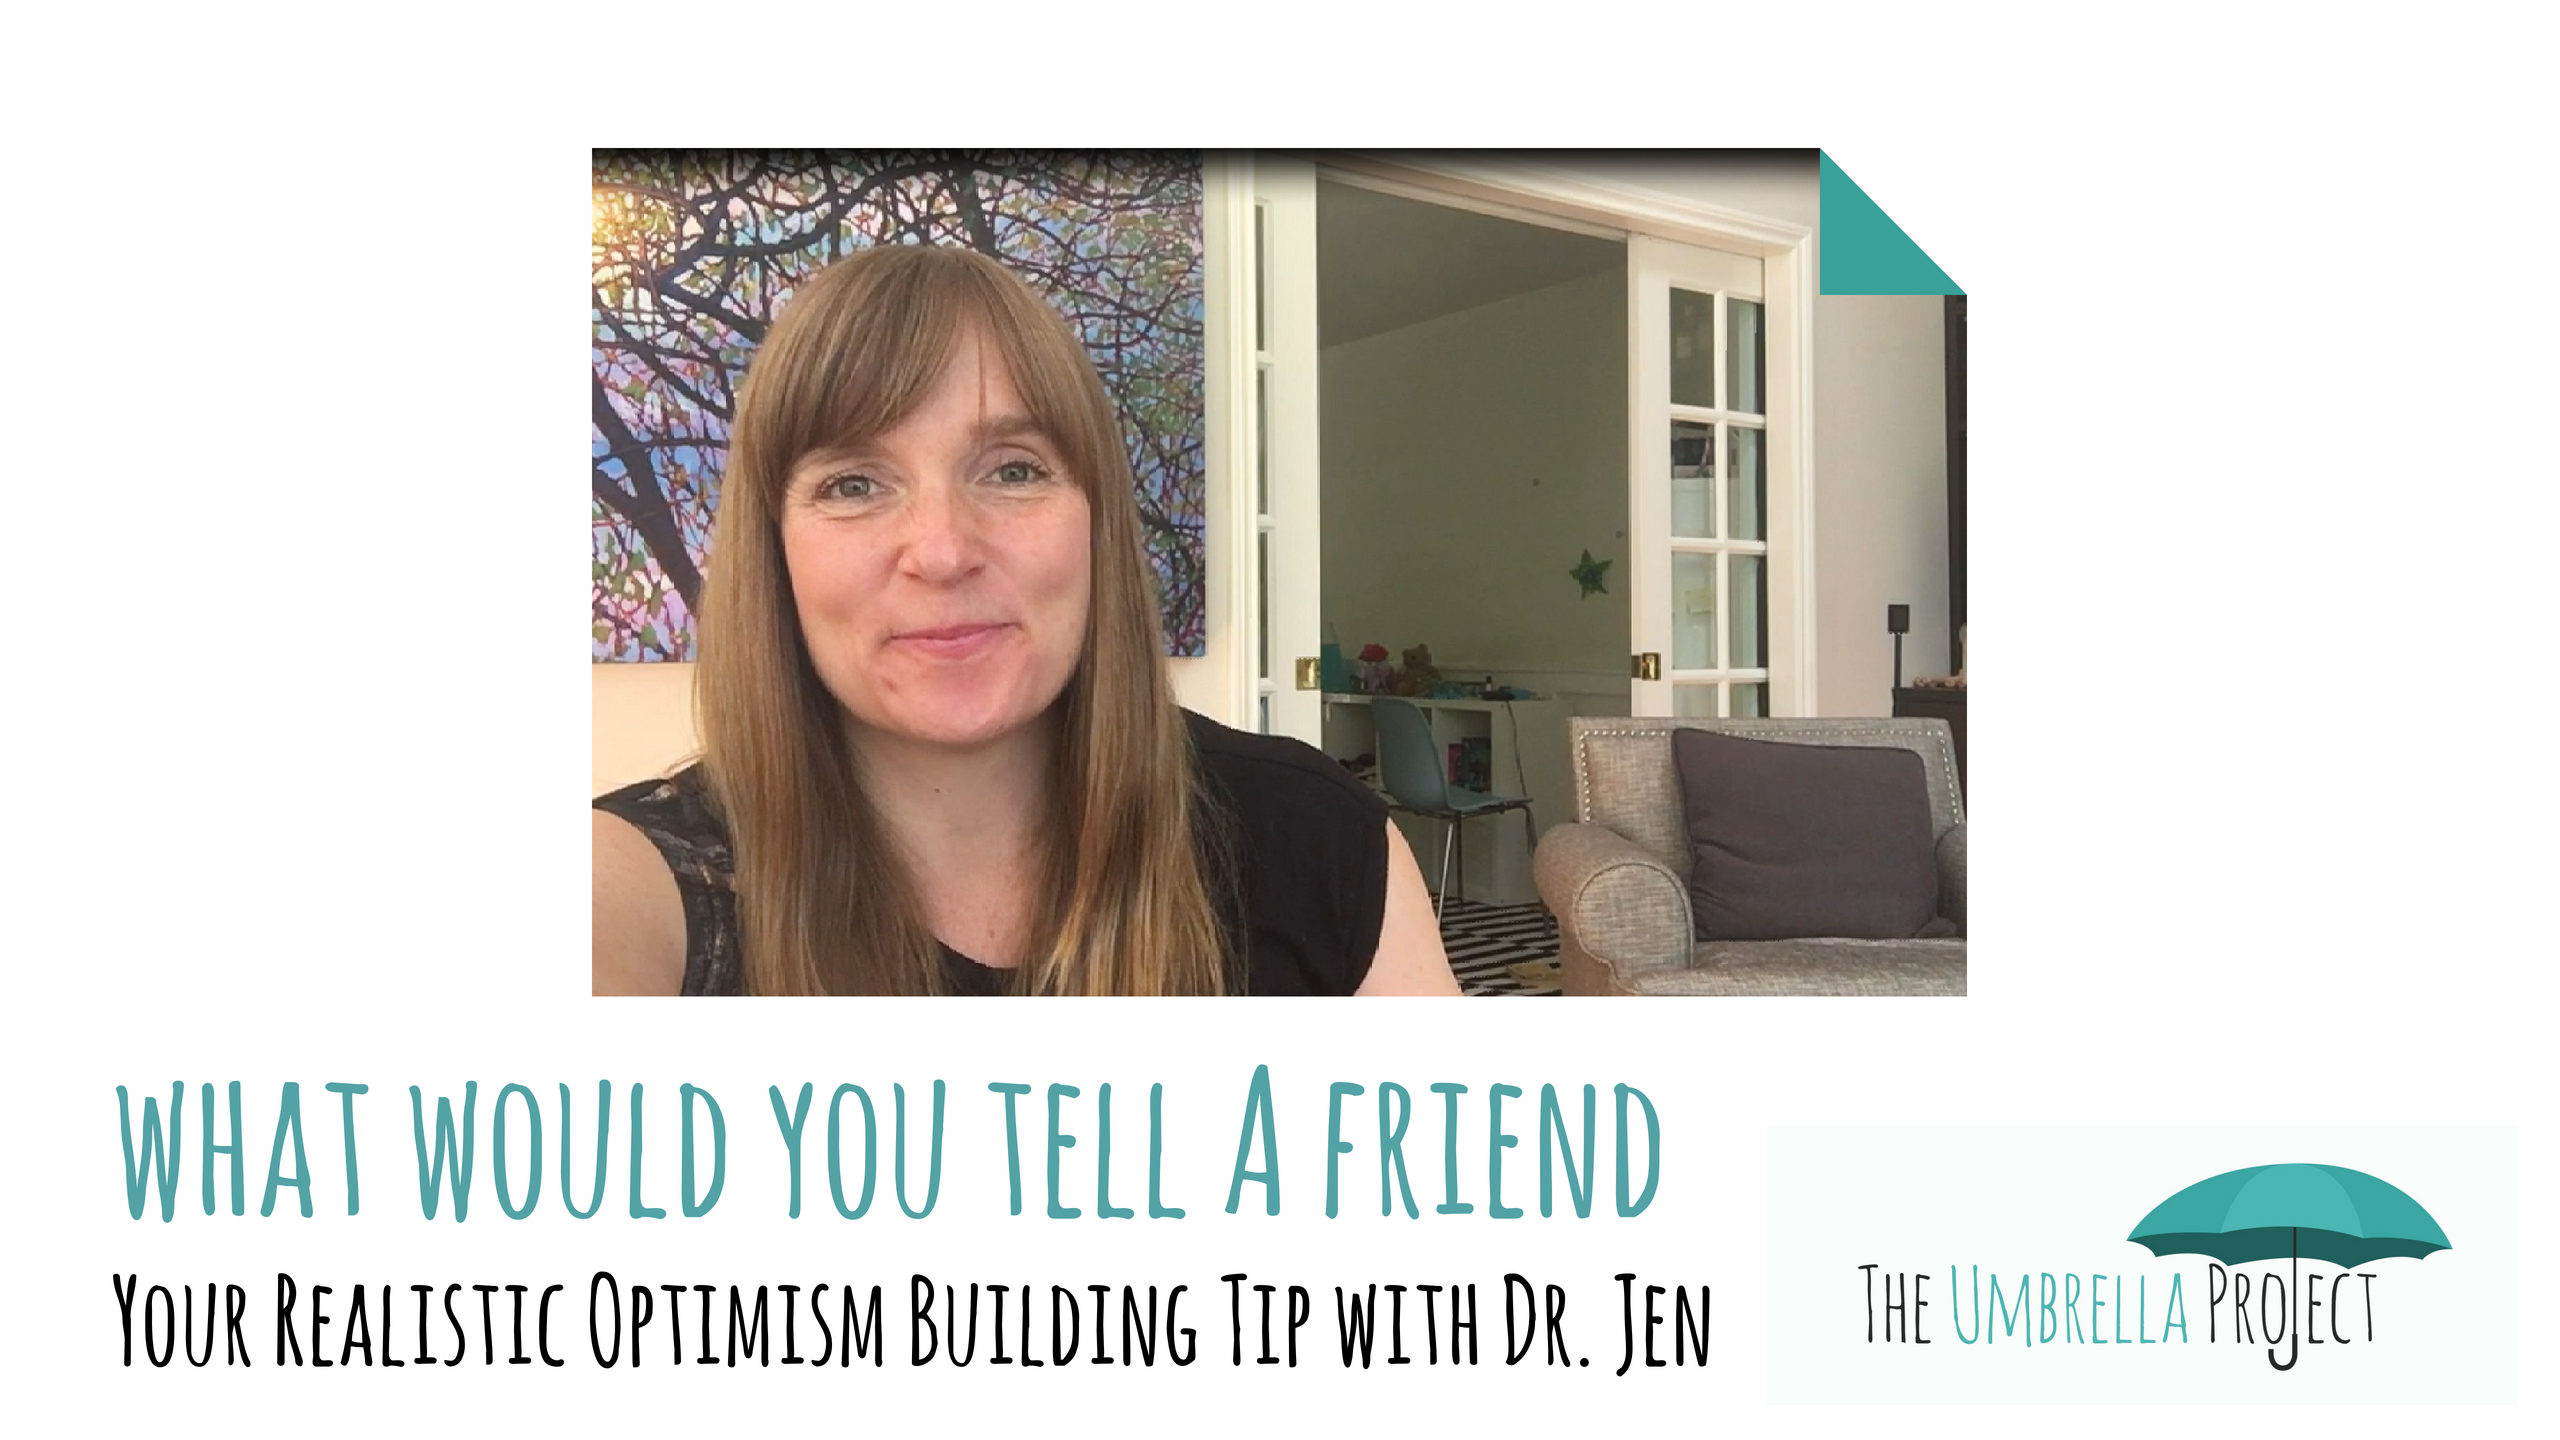 What Would You Tell a Friend: Your Realistic Optimism Building Tip with Dr. Jen